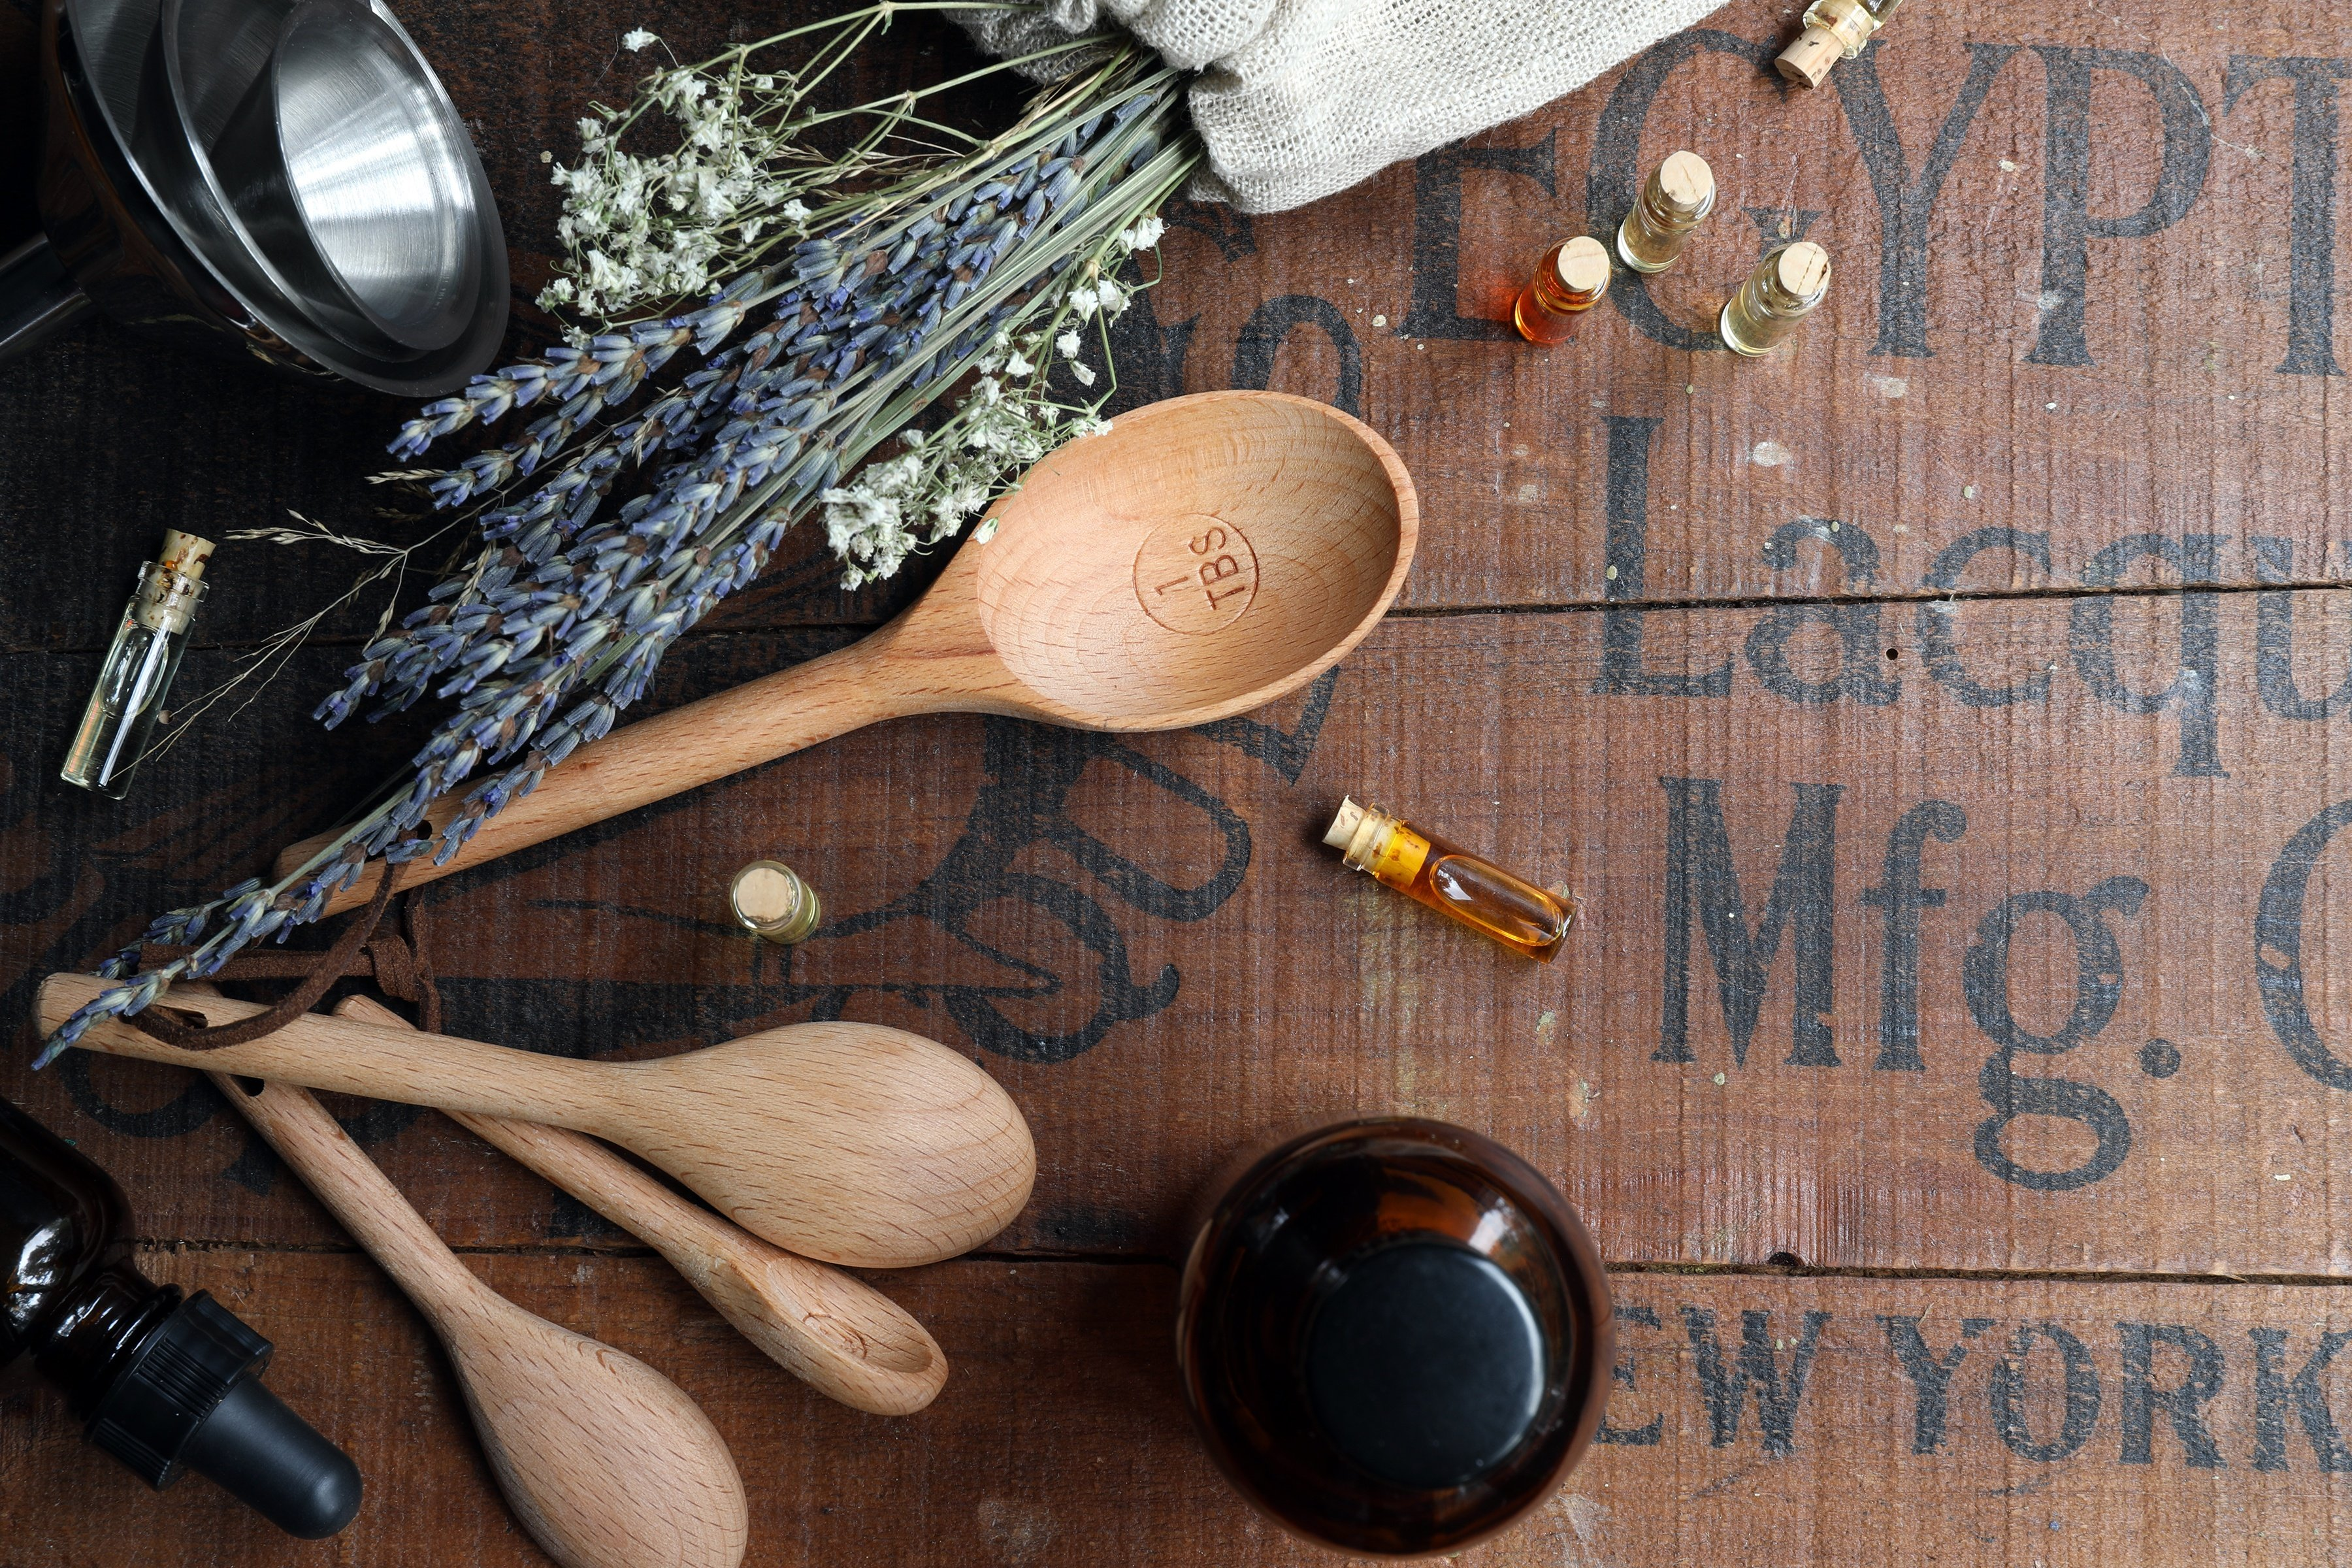 Wooden spoons laying hout year essential oils and dried lavender and other herbal tools